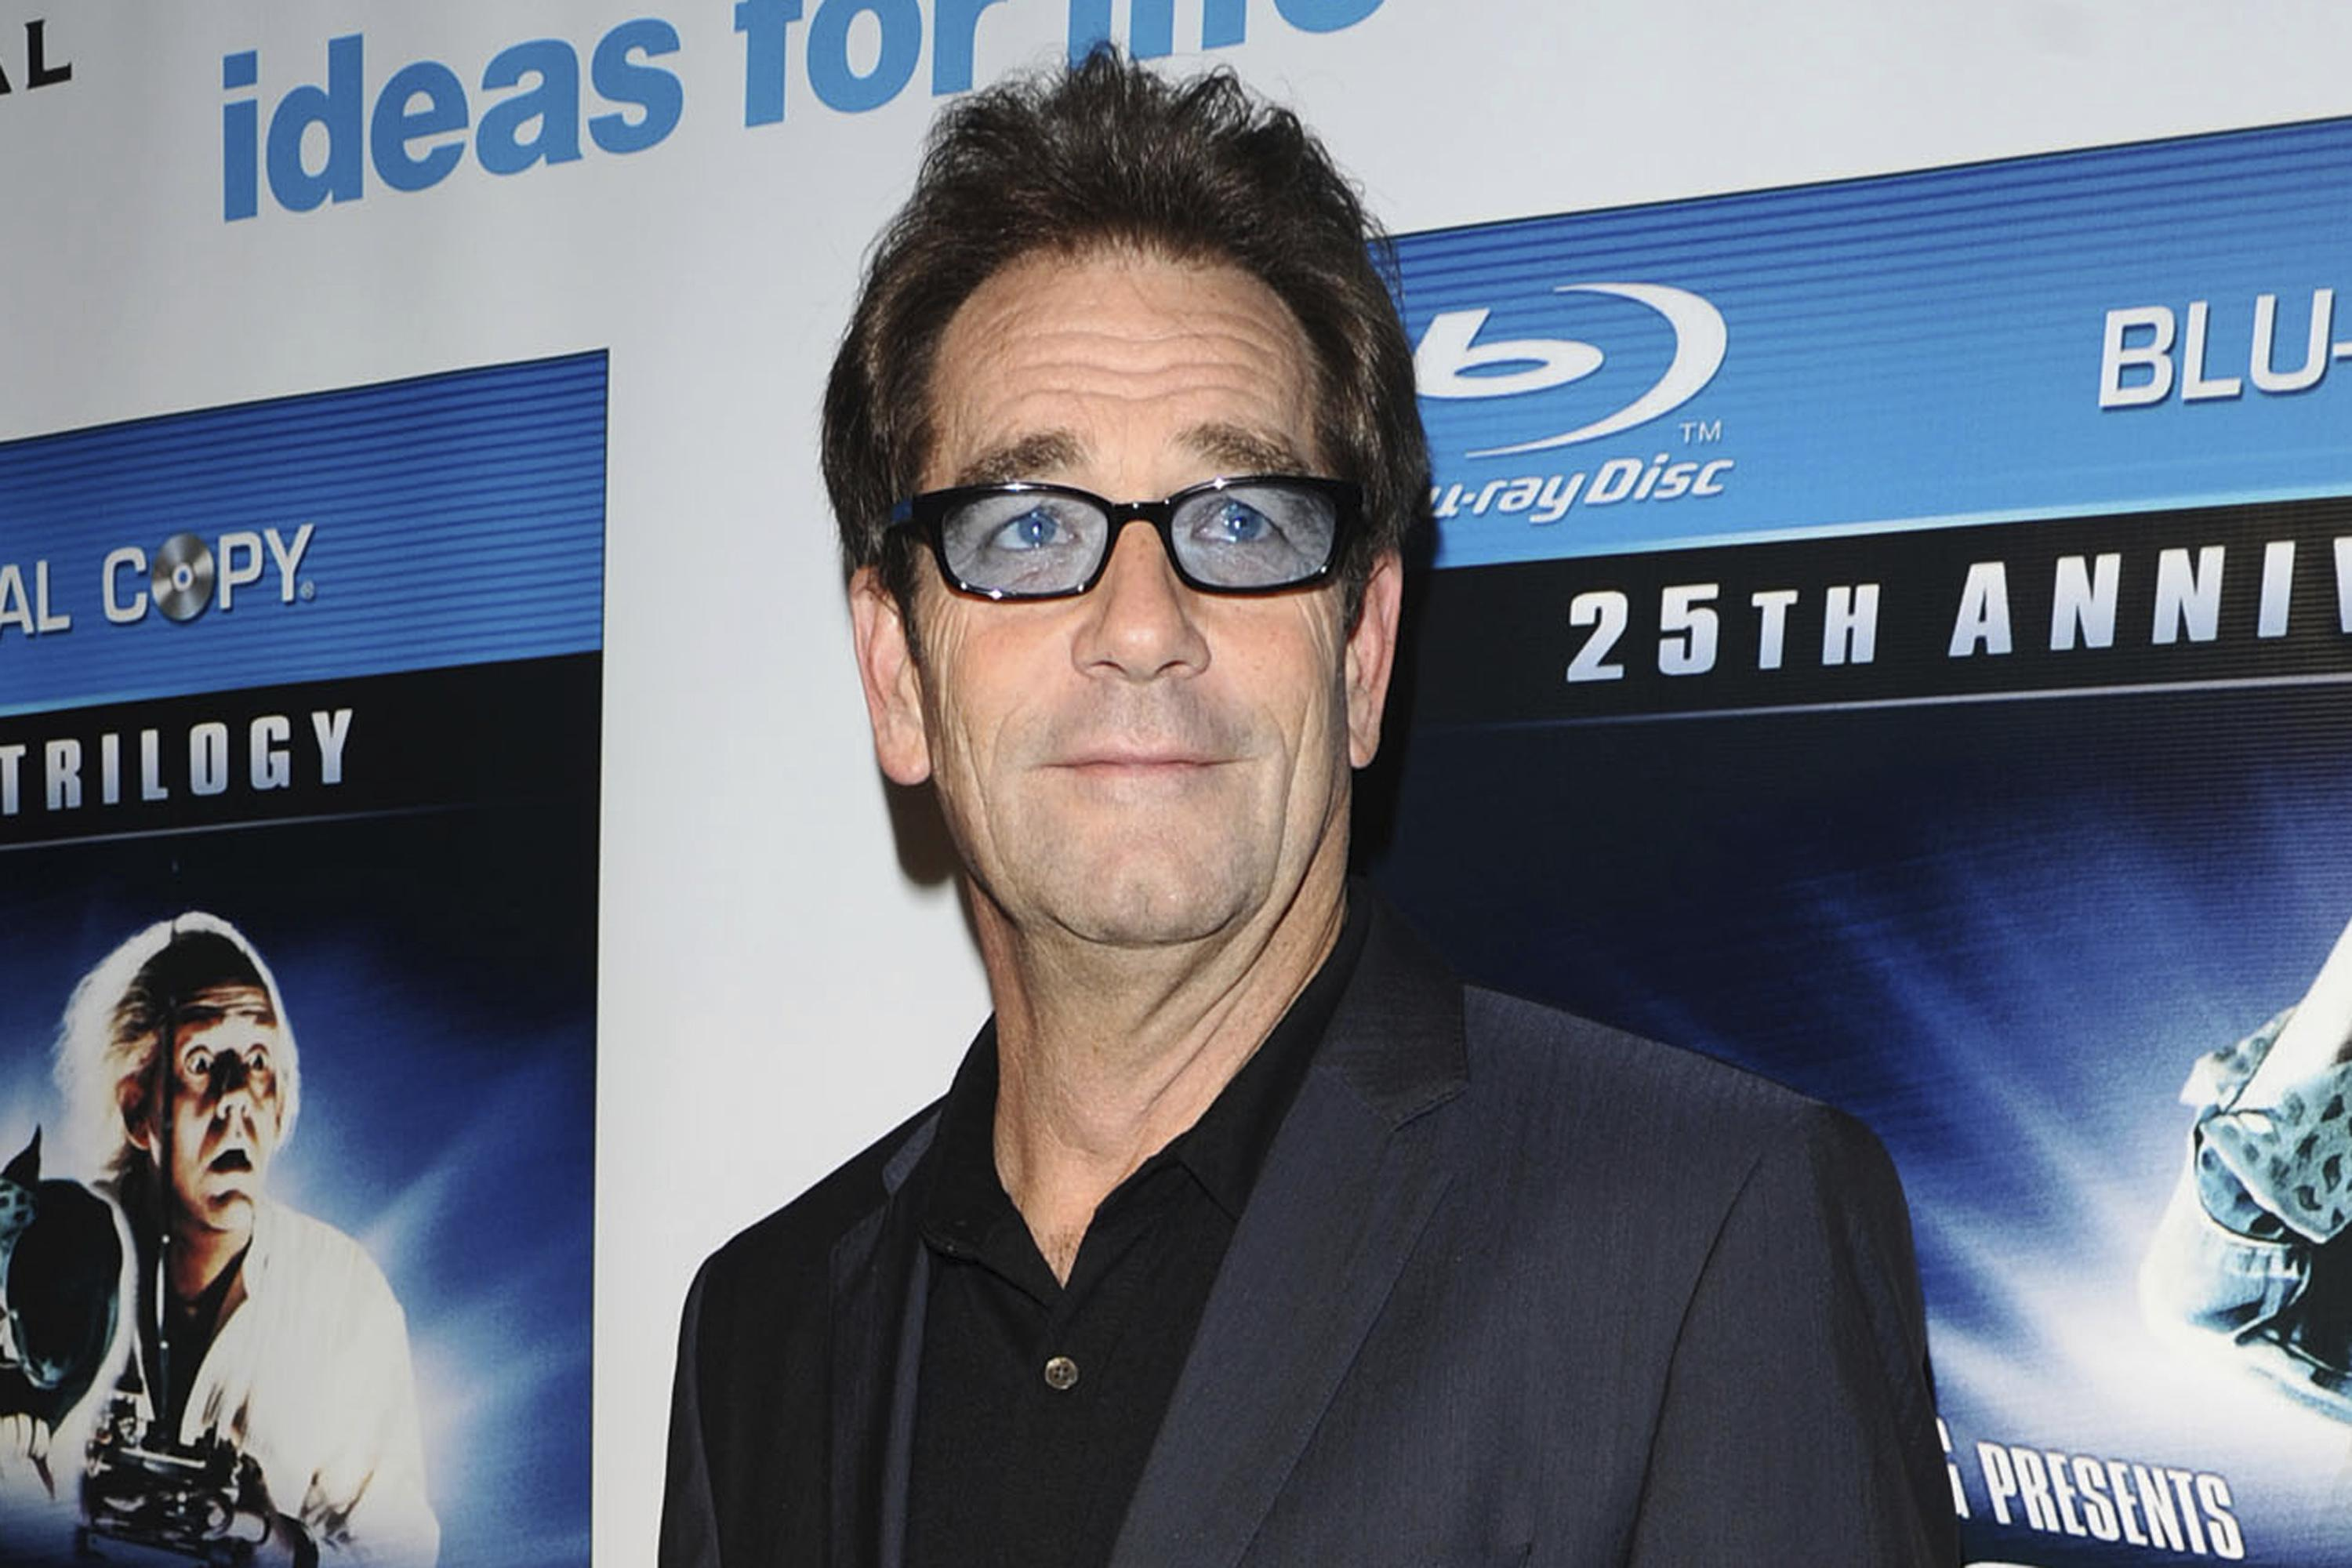 Huey Lewis 'unable to sing or perform' due to debilitating inner ear condition: Report